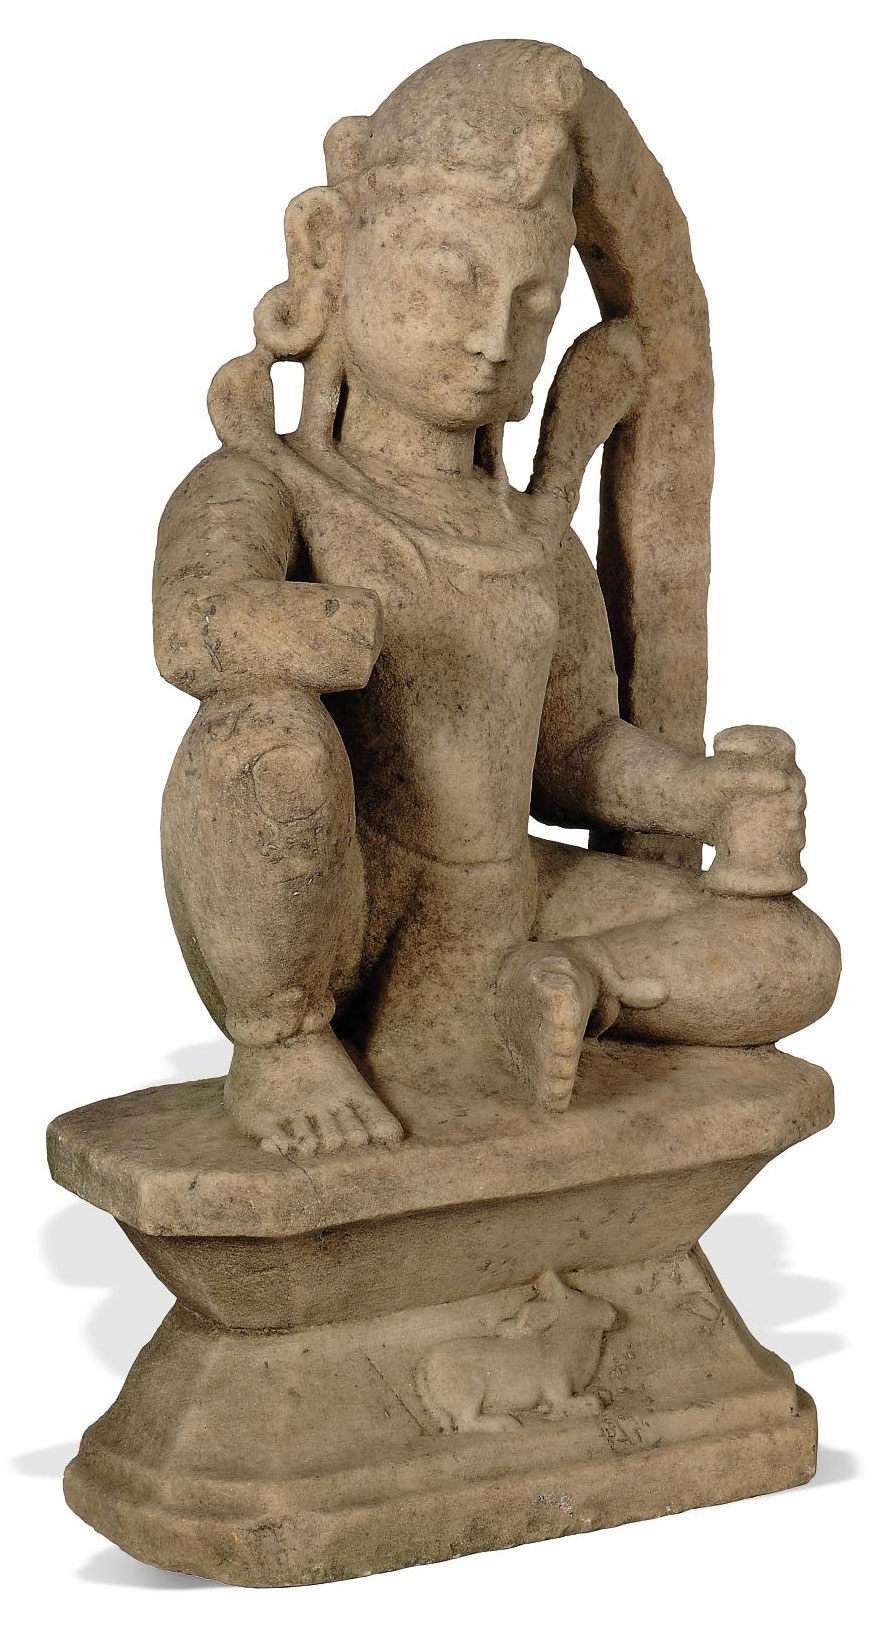 A MARBLE SCULPTURE OF SIVA, RA